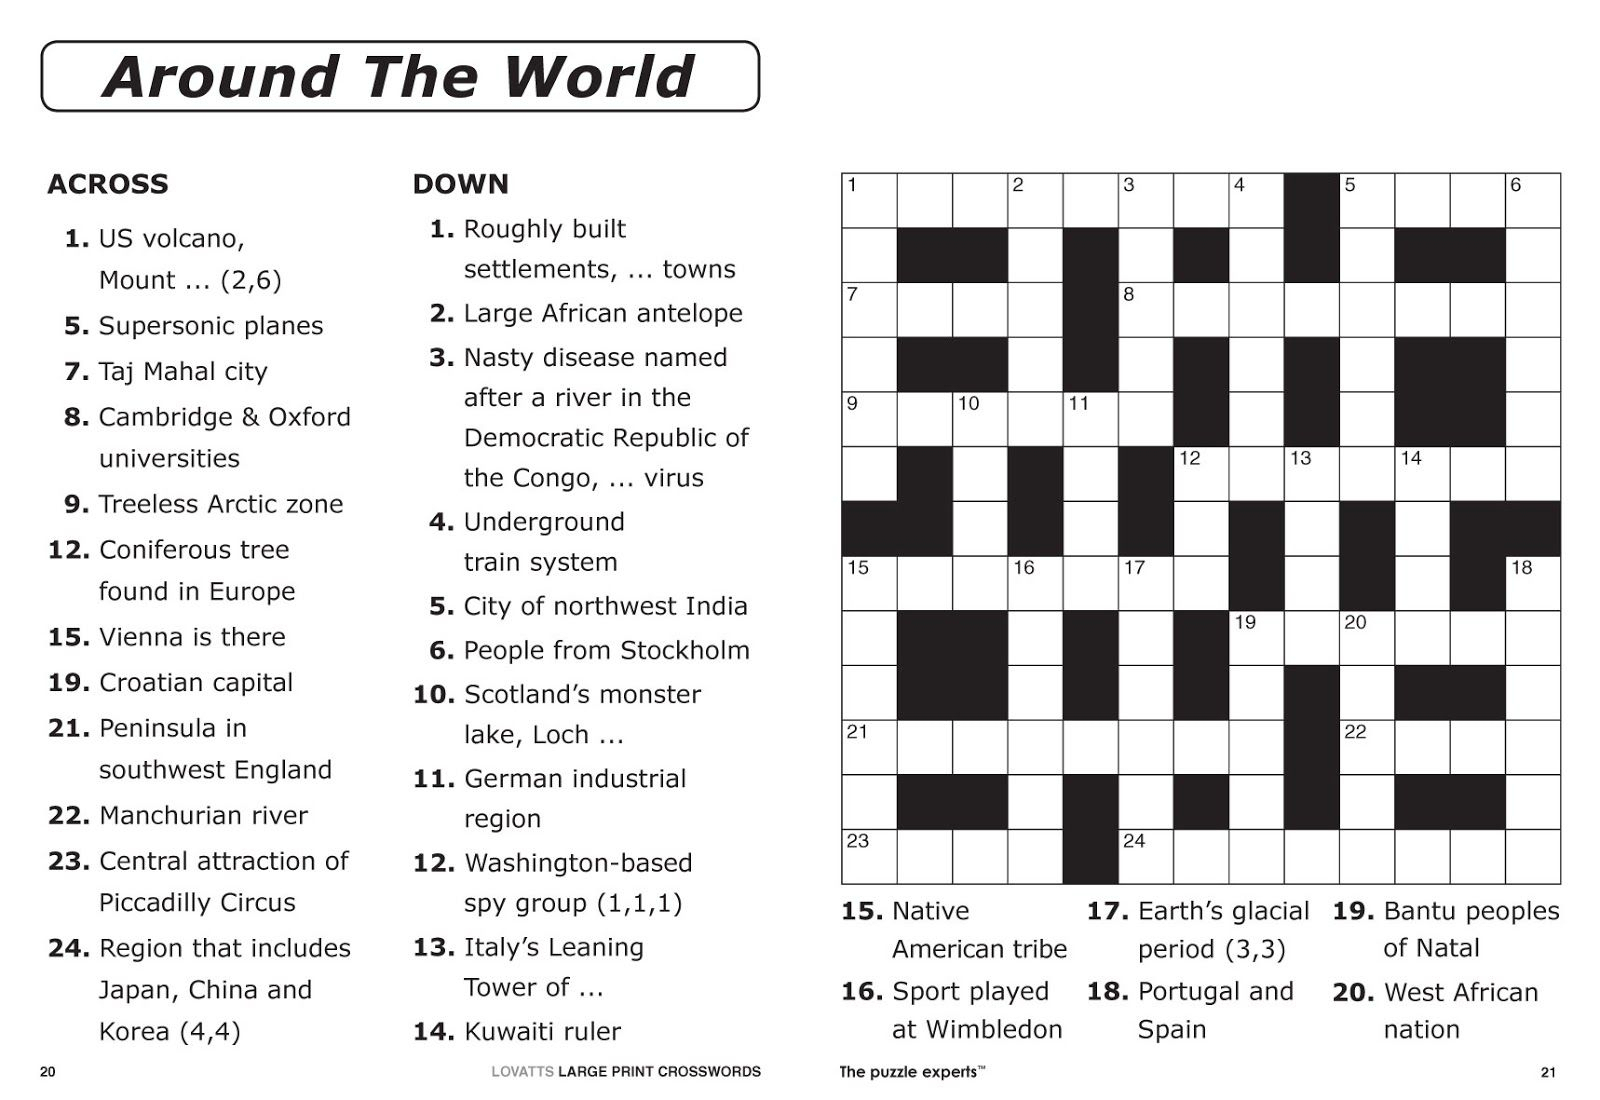 Free Printable Large Print Crossword Puzzles | M3U8 - Printable Crossword Letters